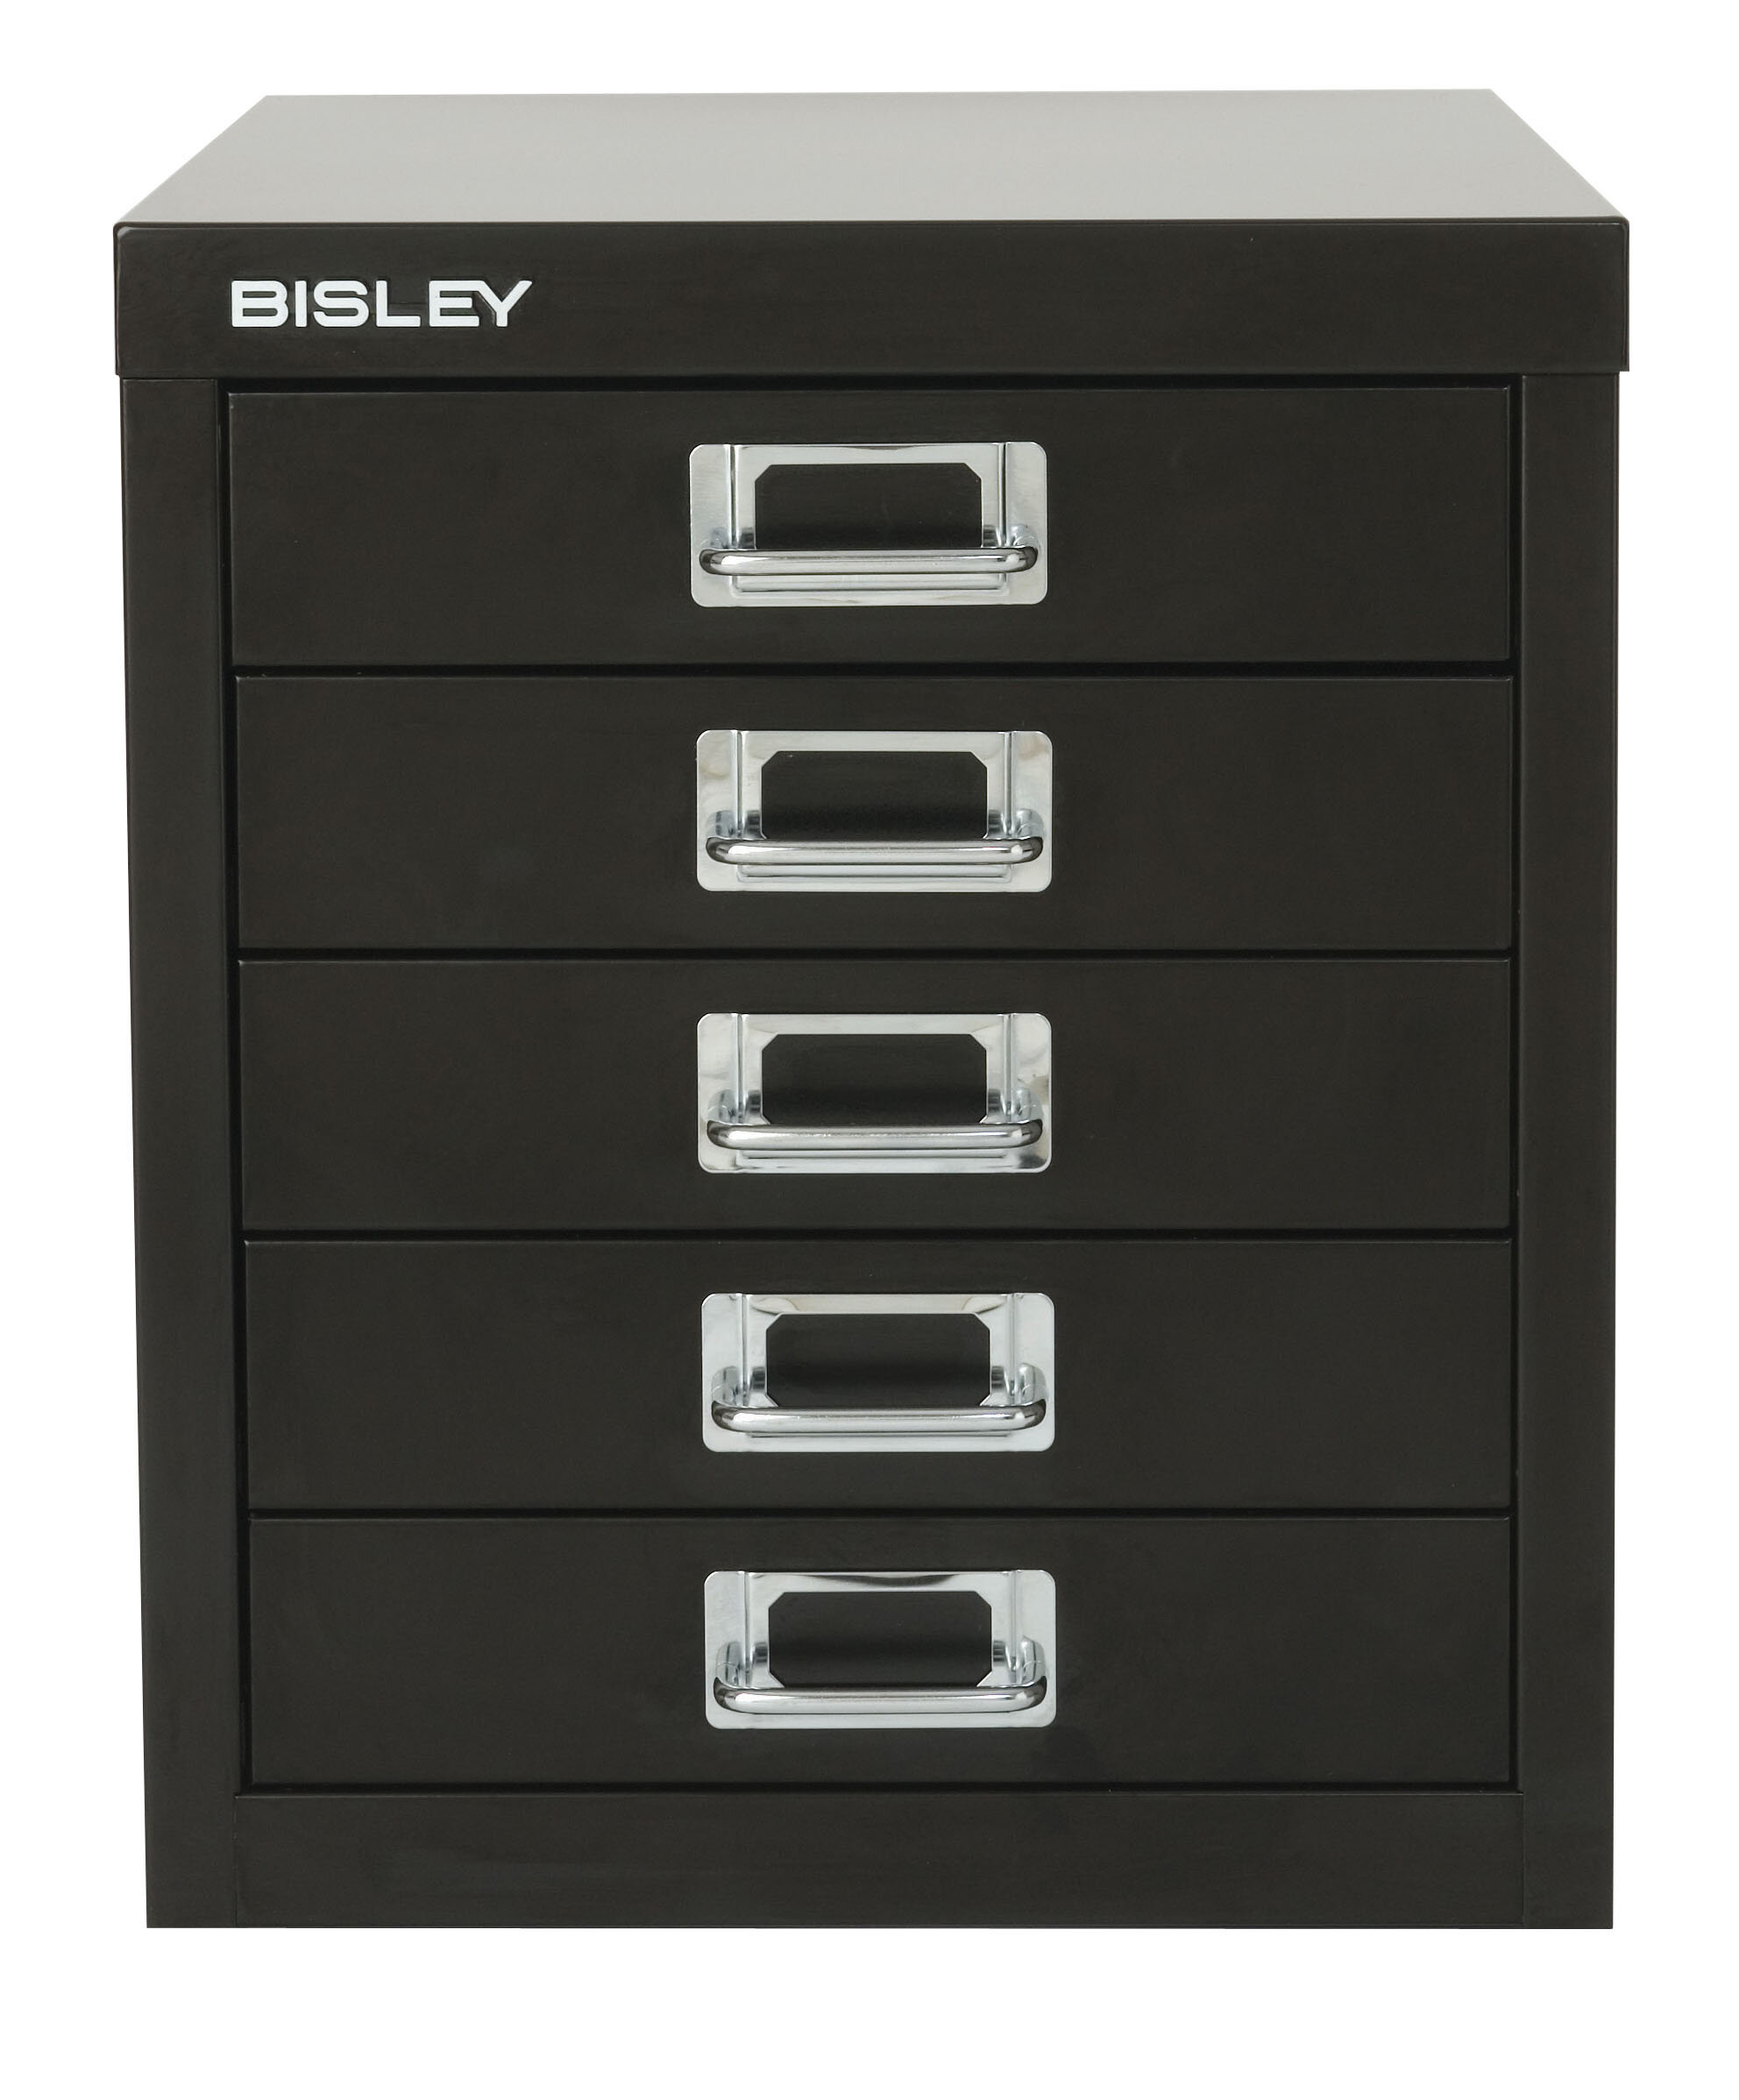 Bisley 5 Drawer Vertical File U0026 Reviews | Wayfair